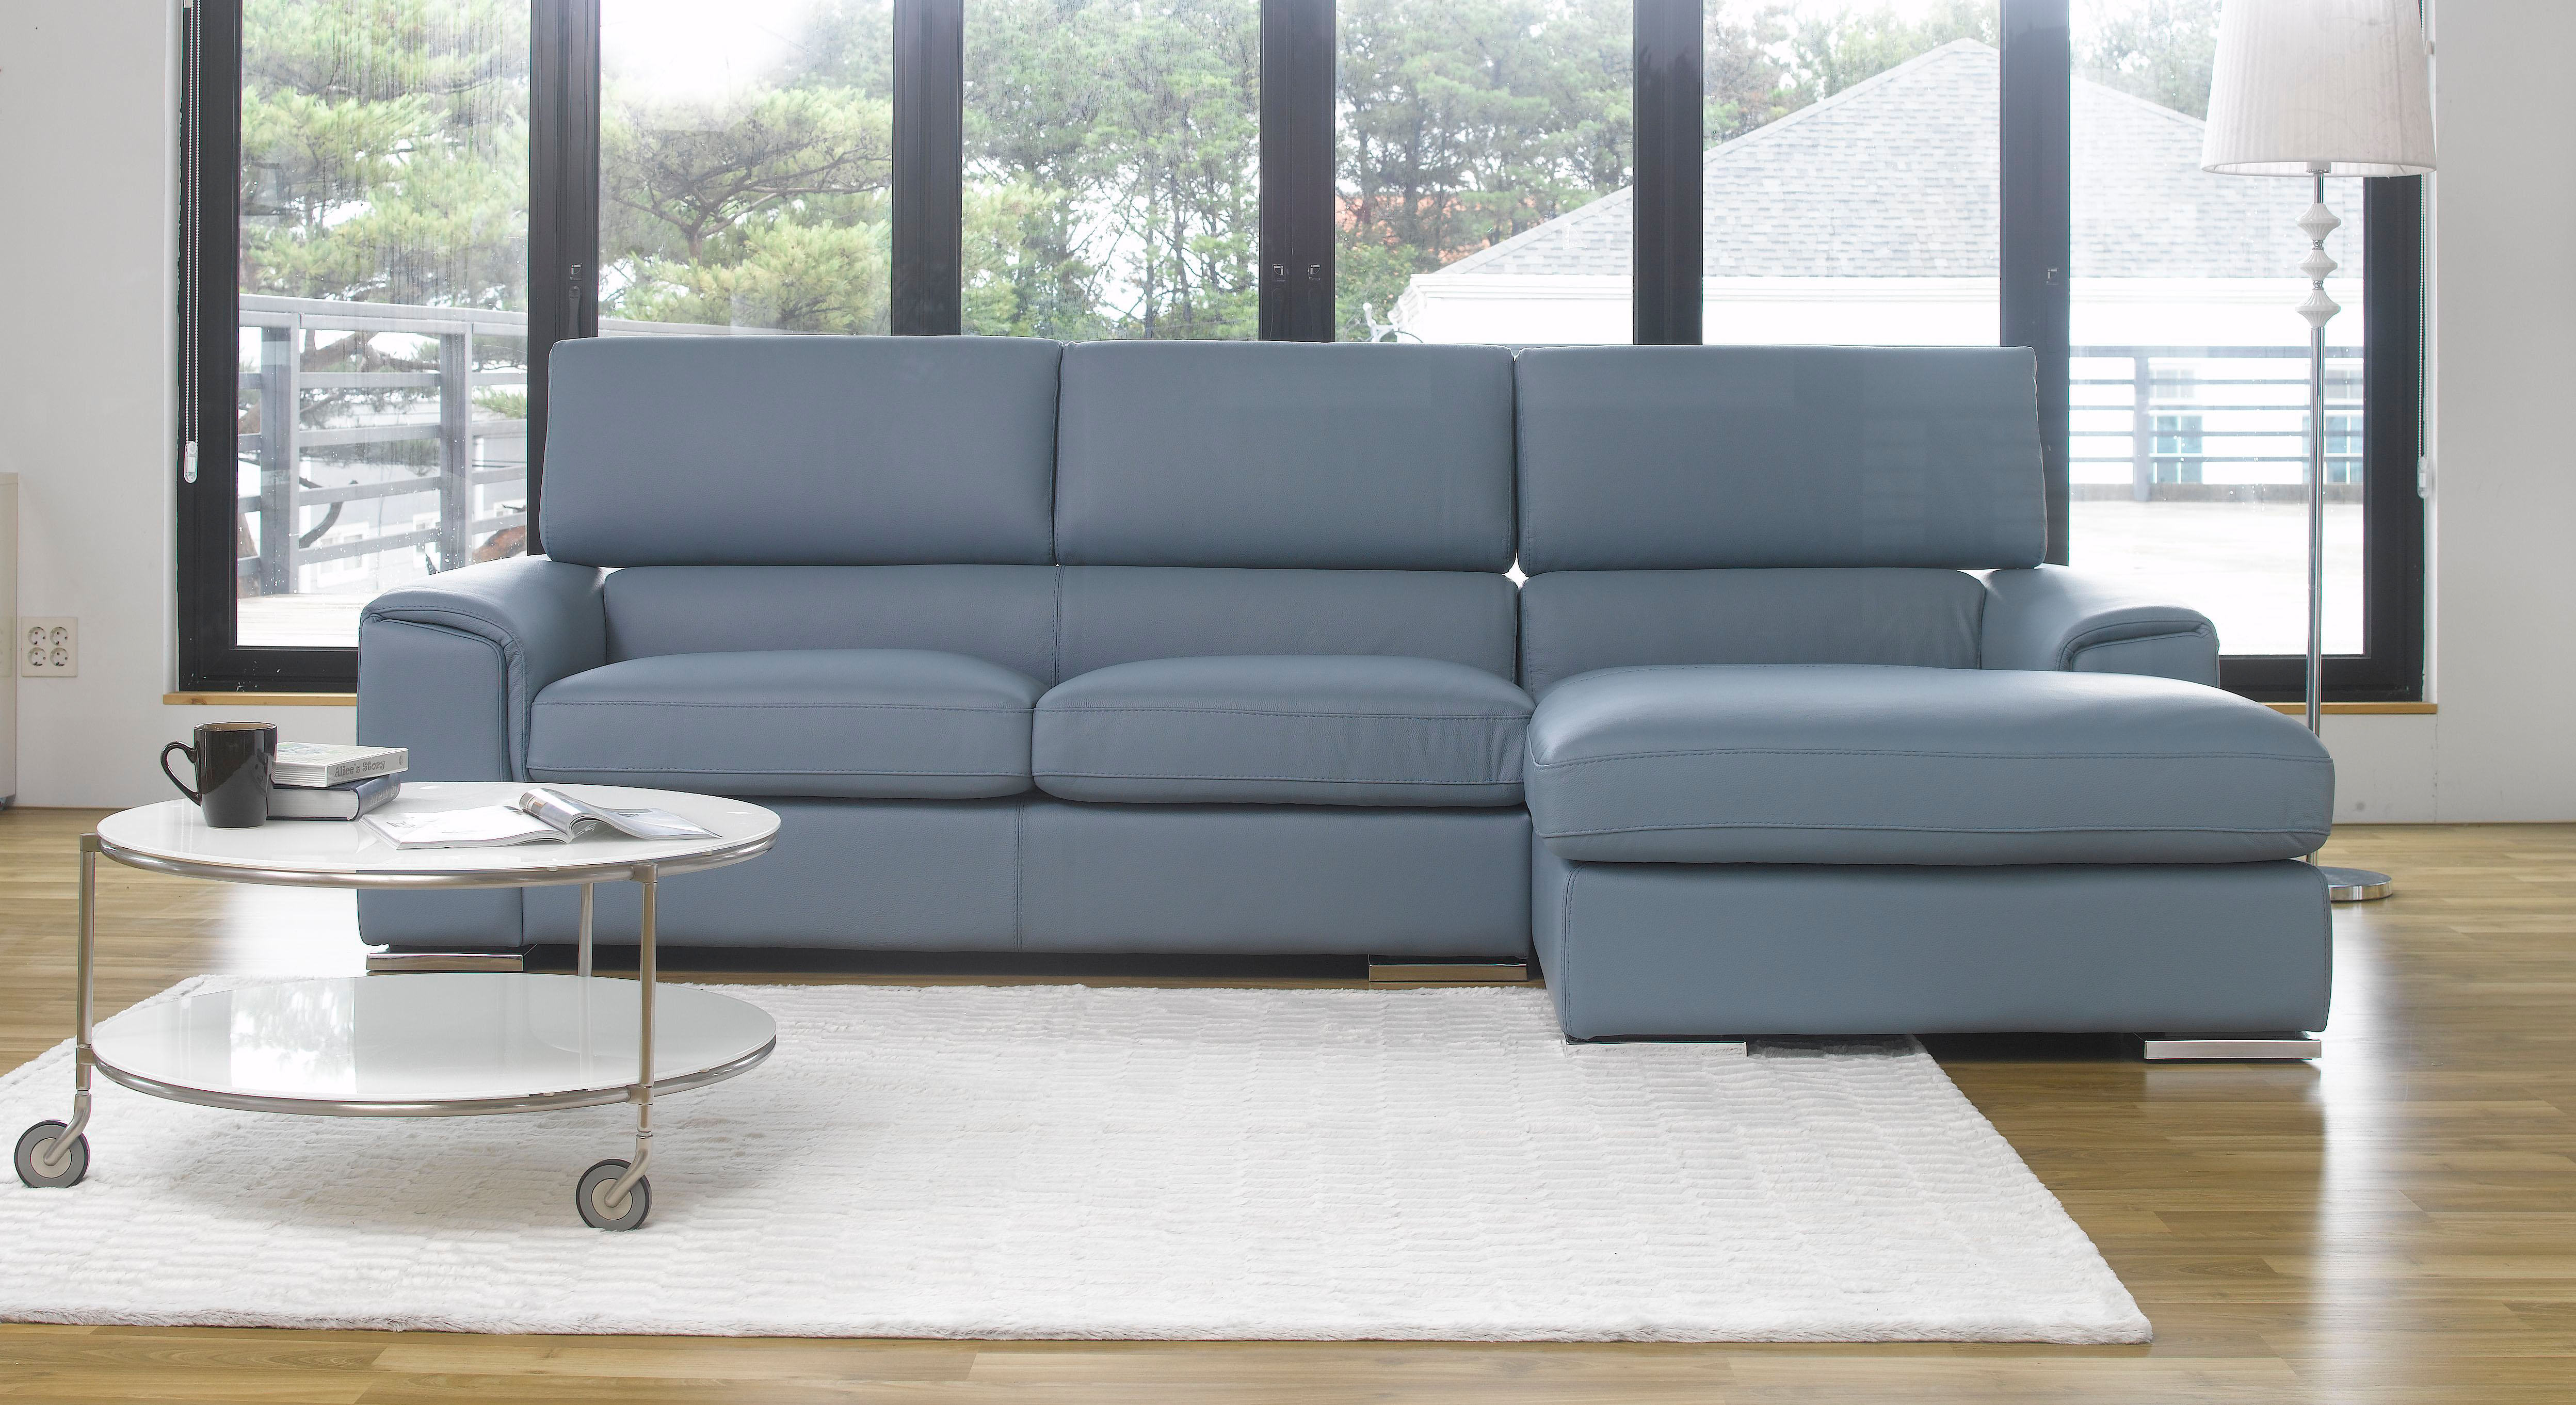 Adjustable Advanced Italian Top Grain Leather Sectional Sofa San